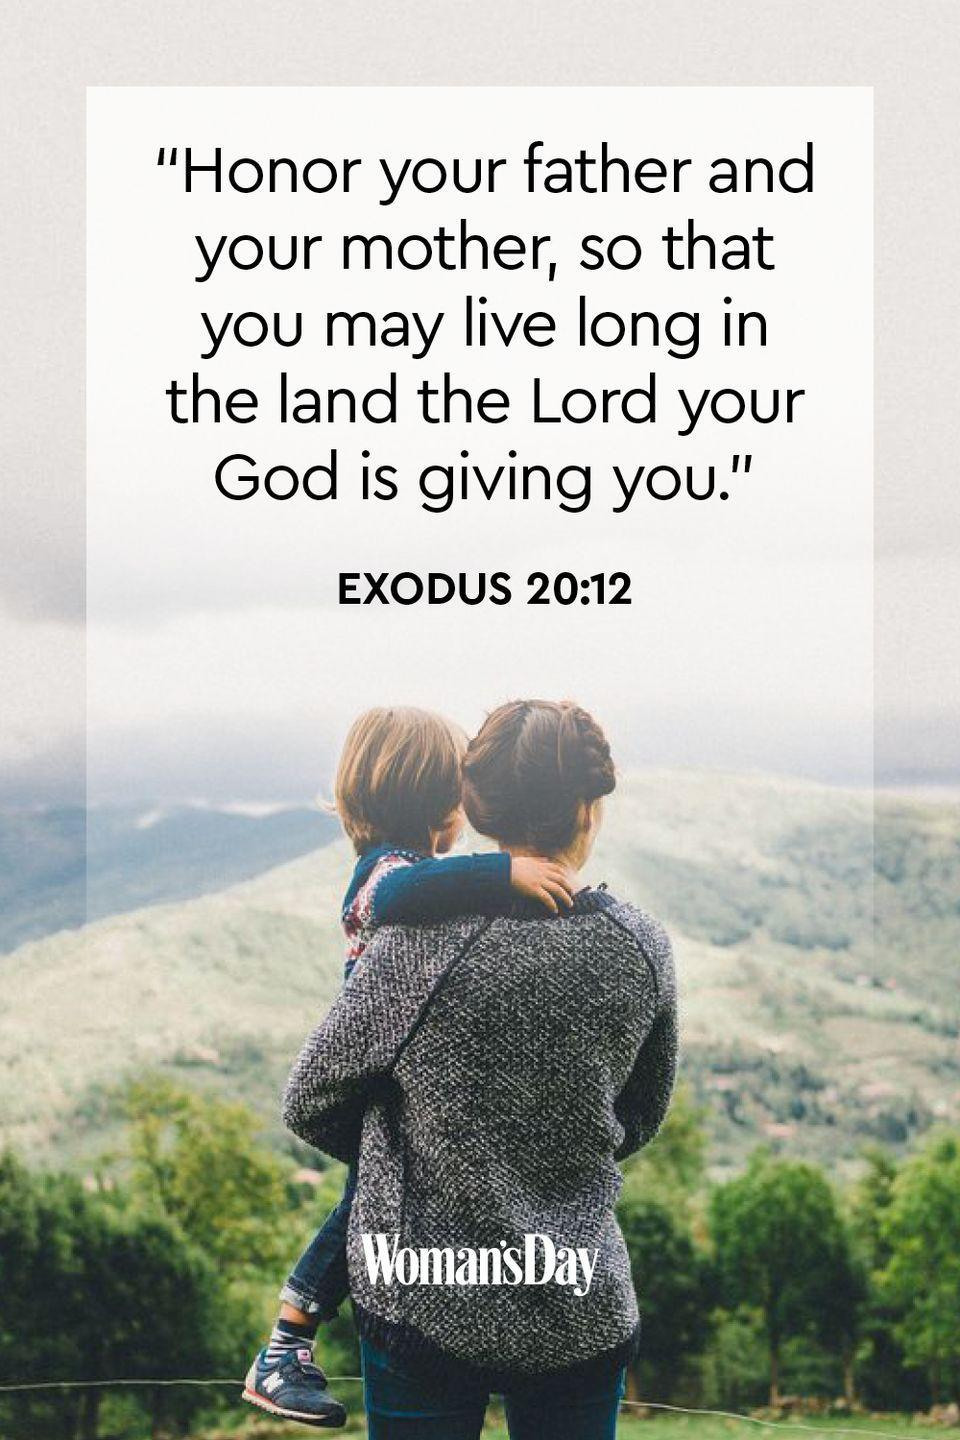 "<p>""Honor your father and your mother, so that you may live long in the land the Lord your God is giving you.""</p><p><strong>The Good News: </strong>If you honor your father and mother by treating them with respect, patience, and dignity, then you will live a satisfying and fulfilling life. God will made your journey rewarding in the end.</p>"